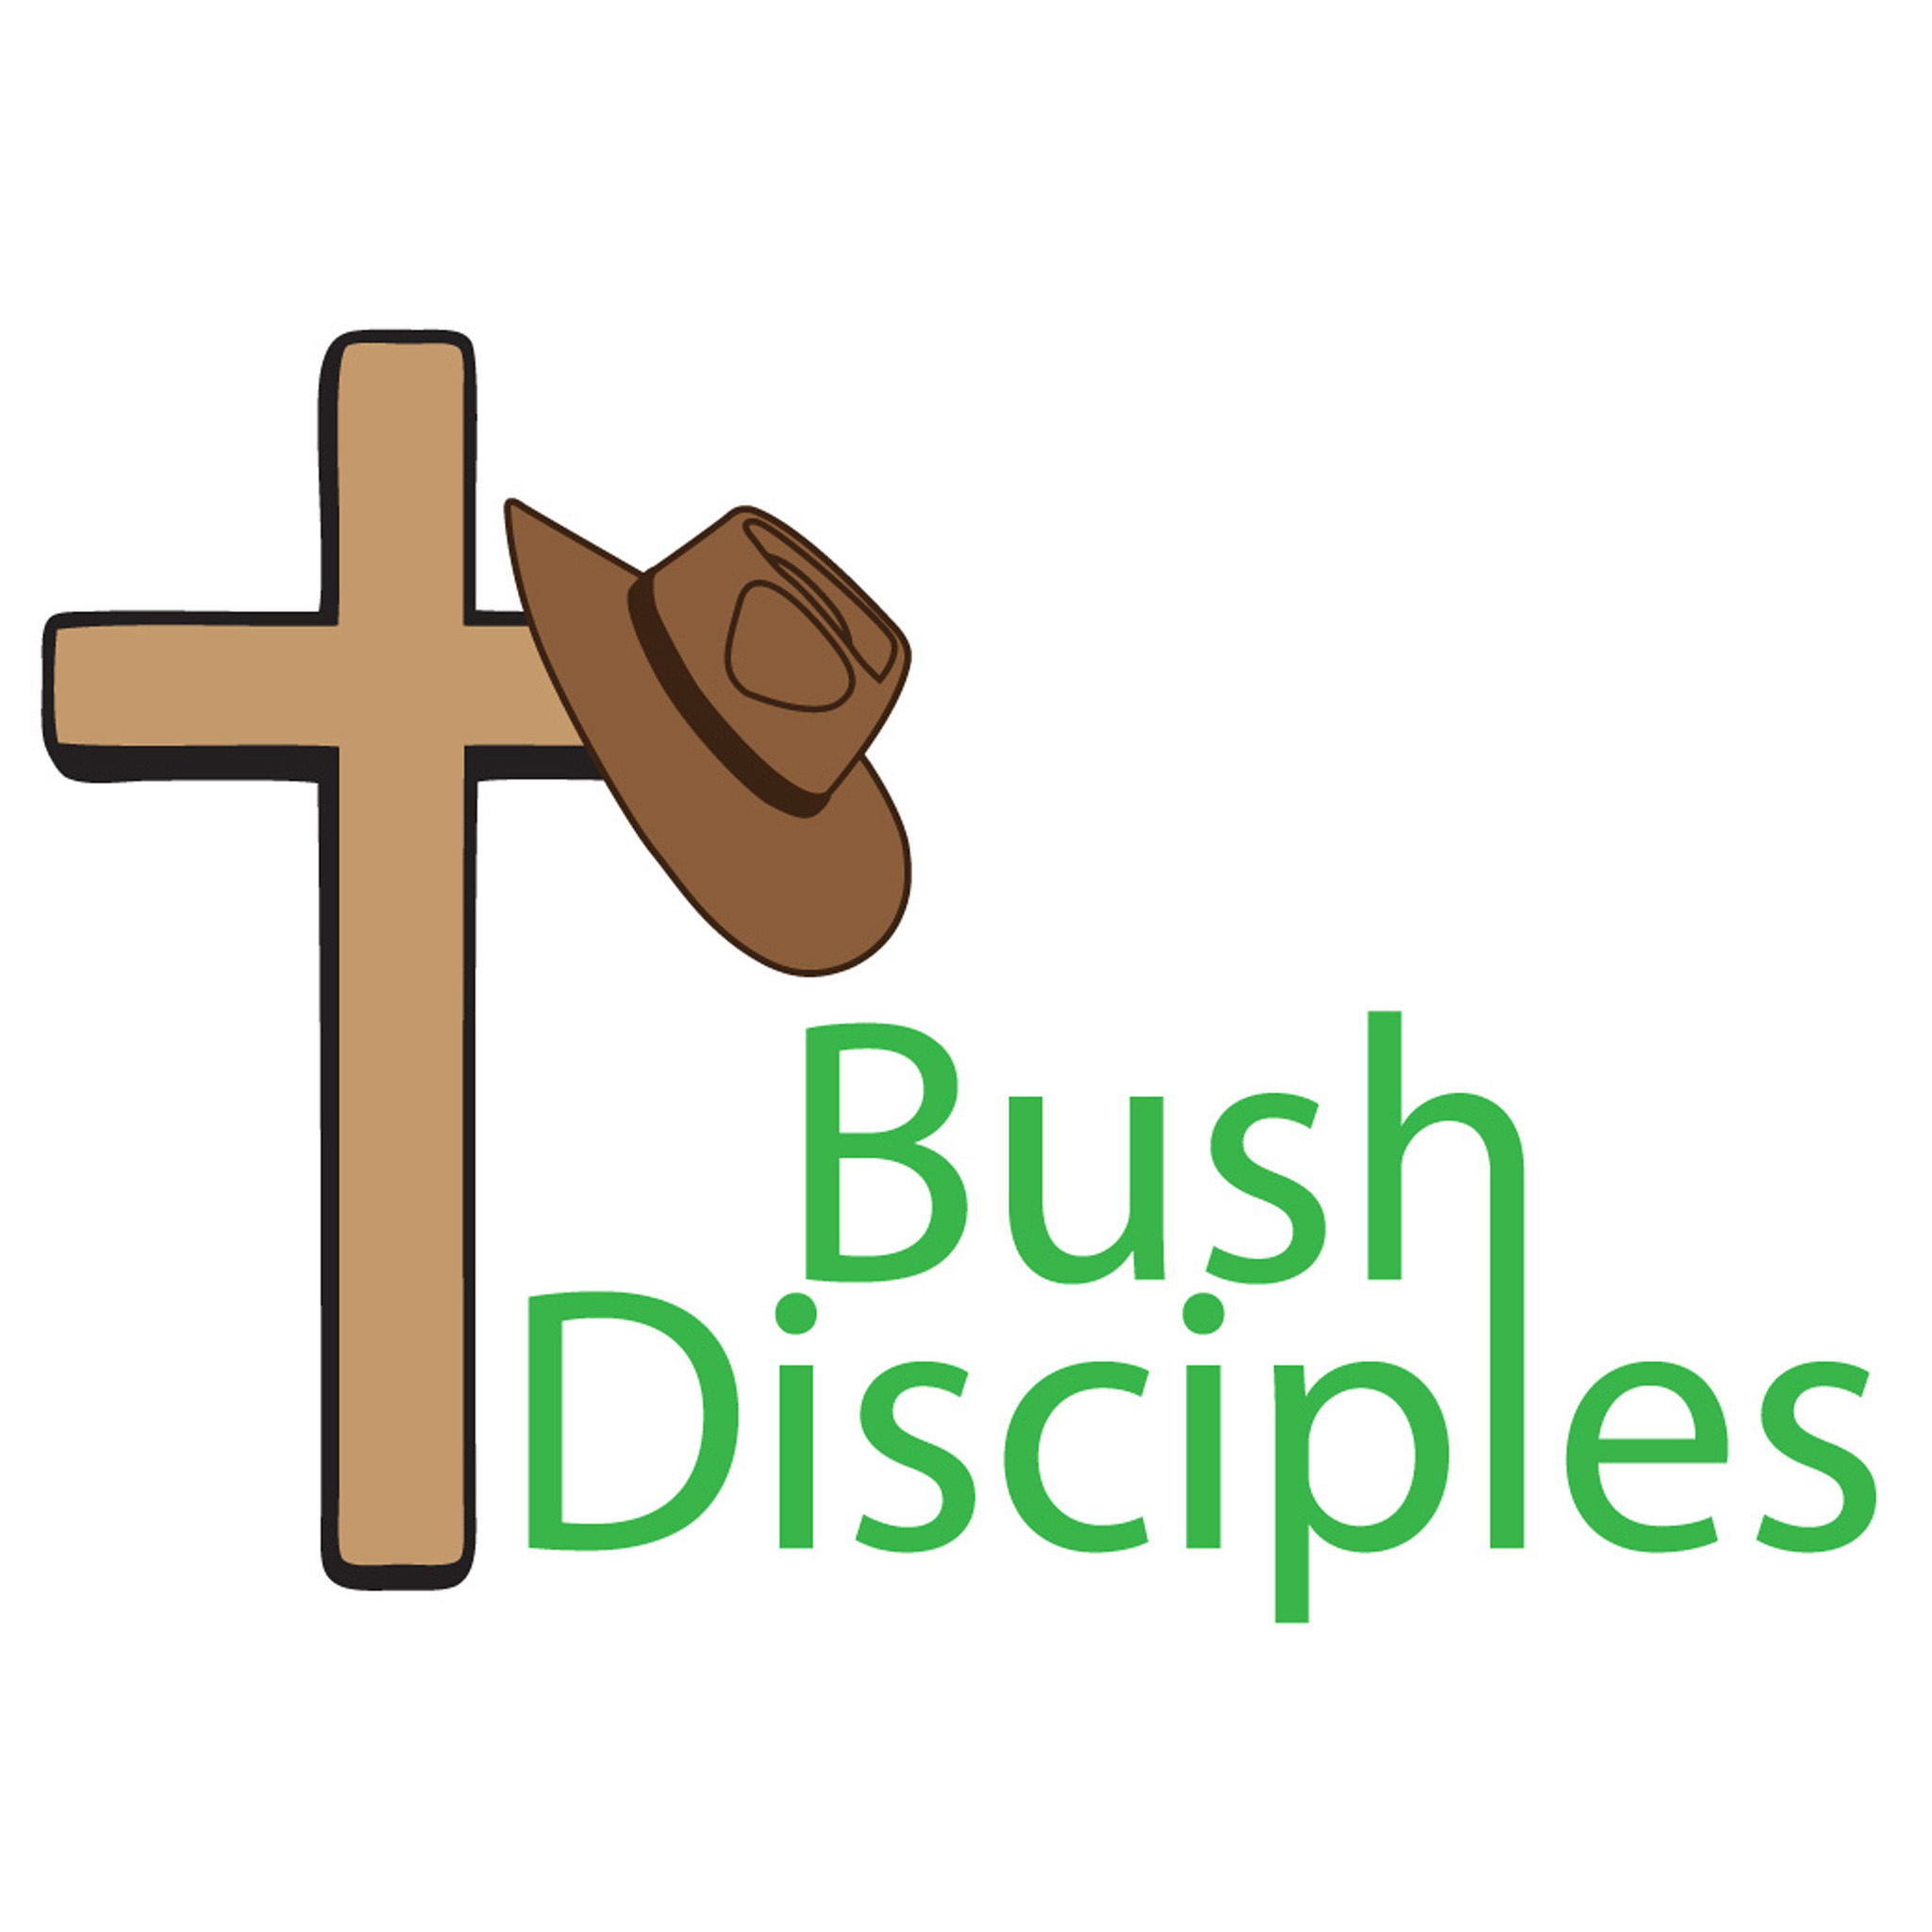 Bush Disciples Sermons